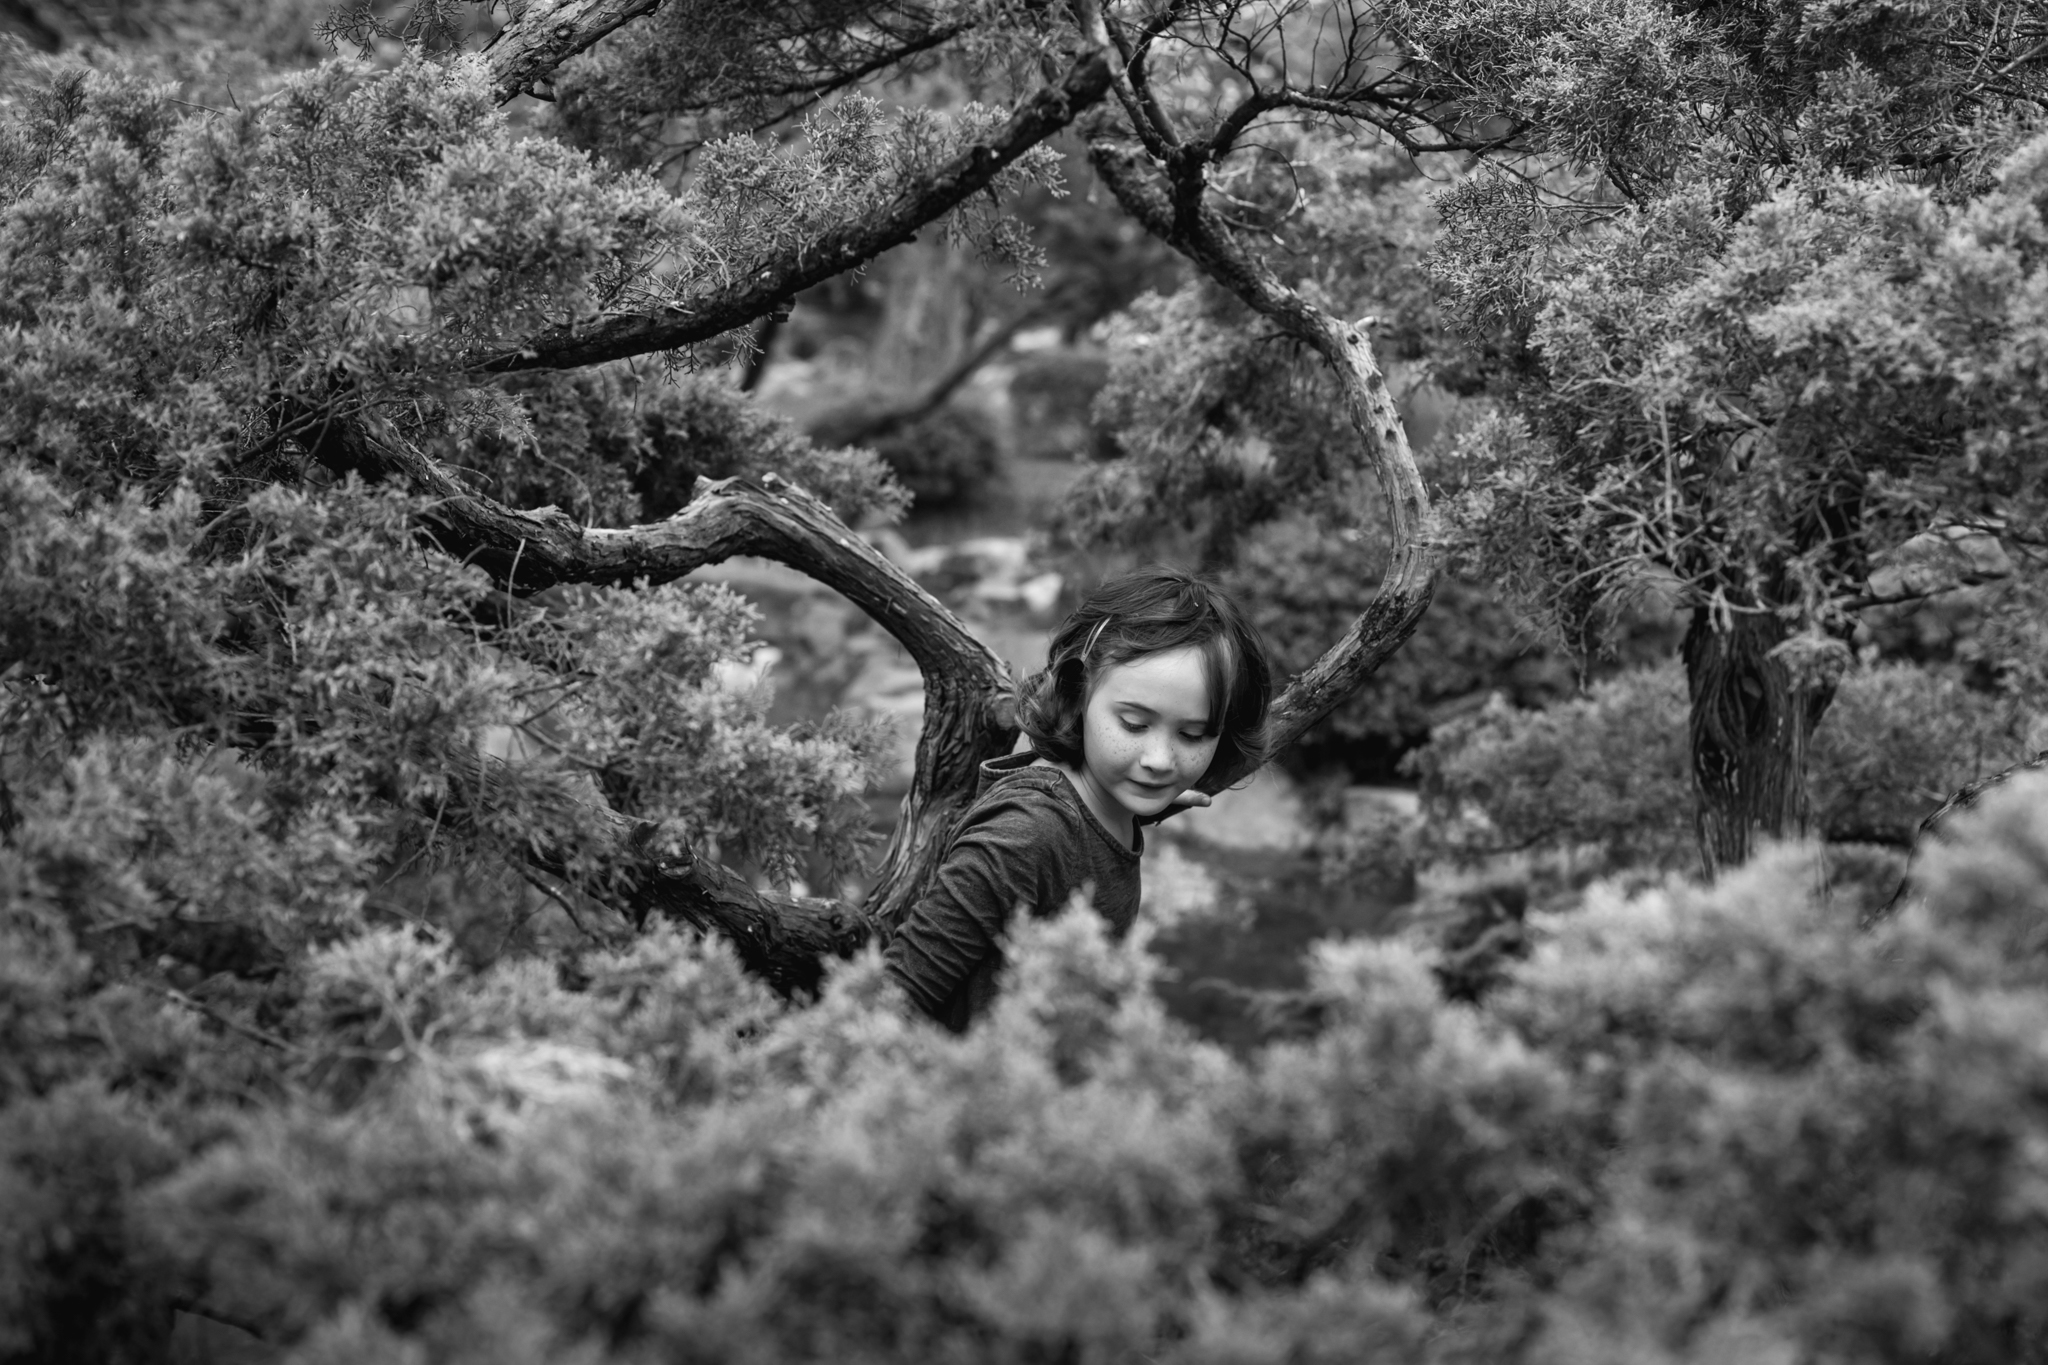 a girl climbs through a tree